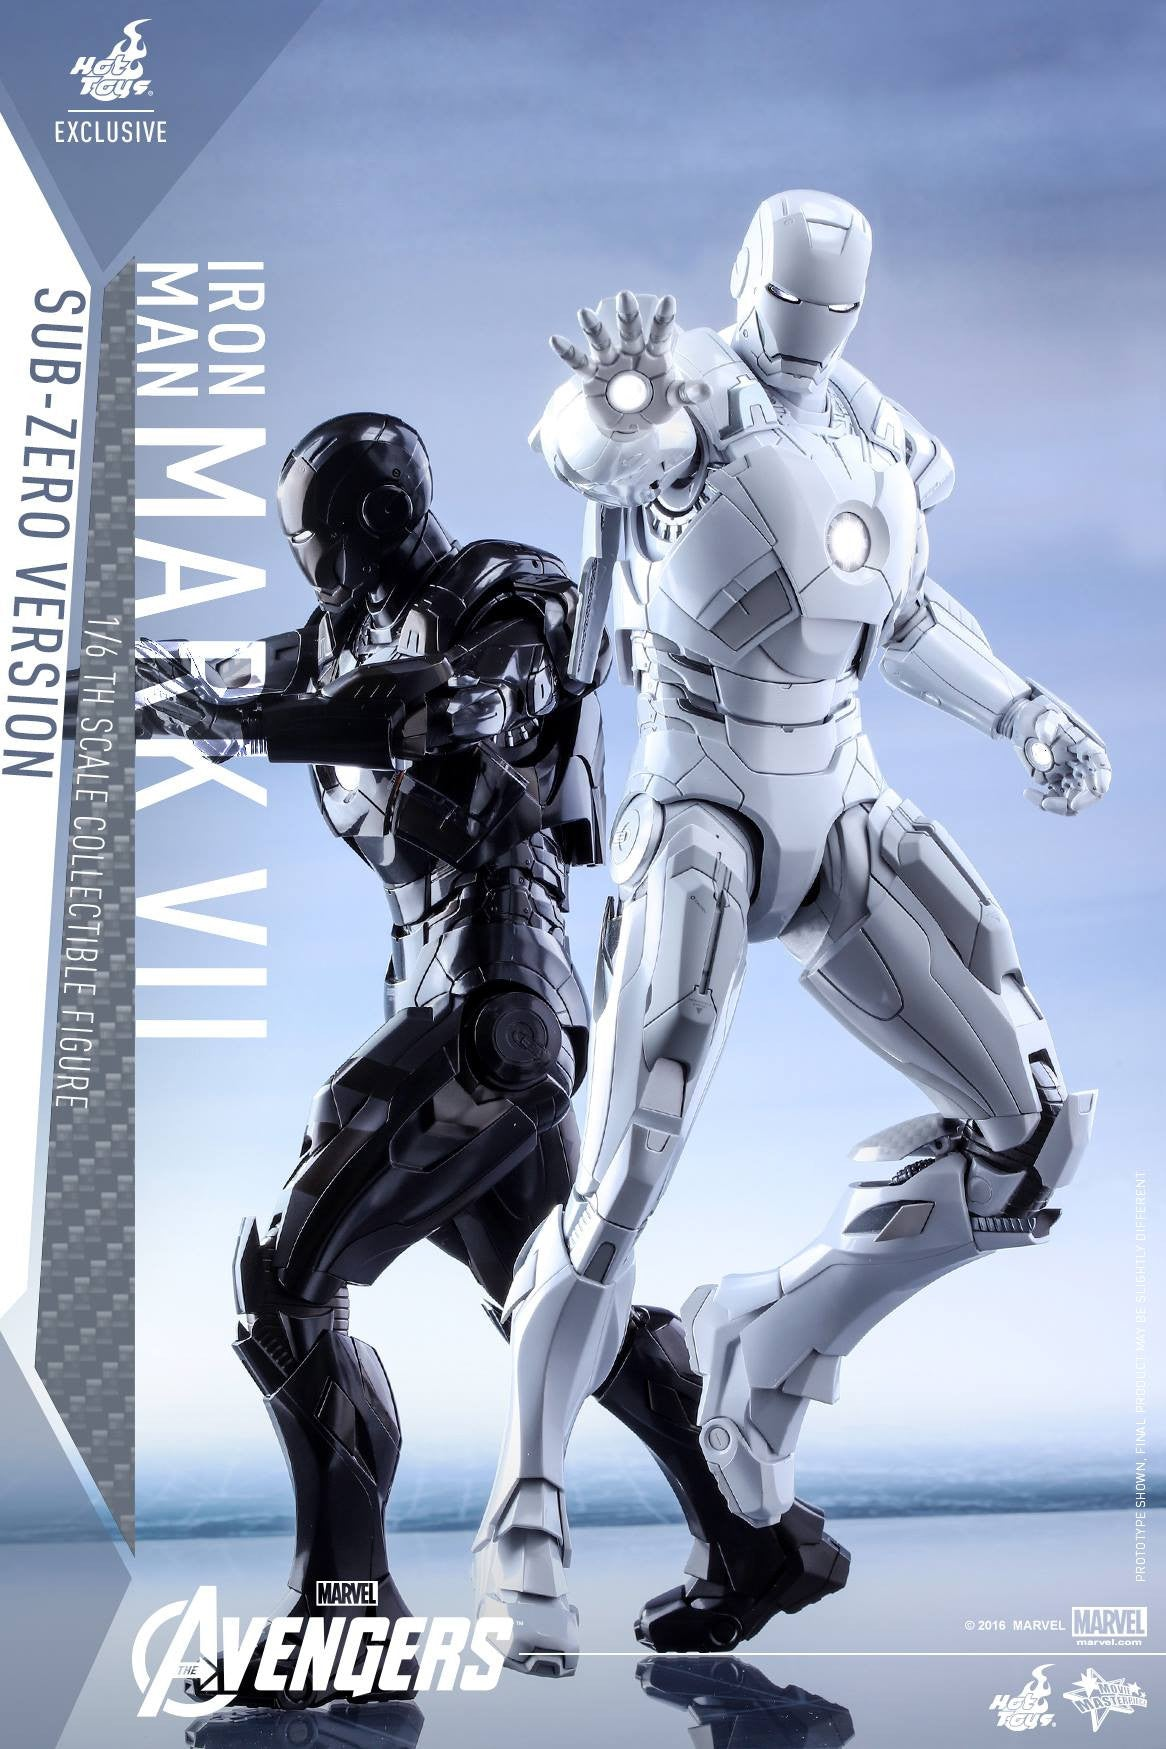 (IN STOCK) Hot Toys - MMS329 - The Avengers - Iron Man Mark VII (Sub-Zero Version) - Marvelous Toys - 9